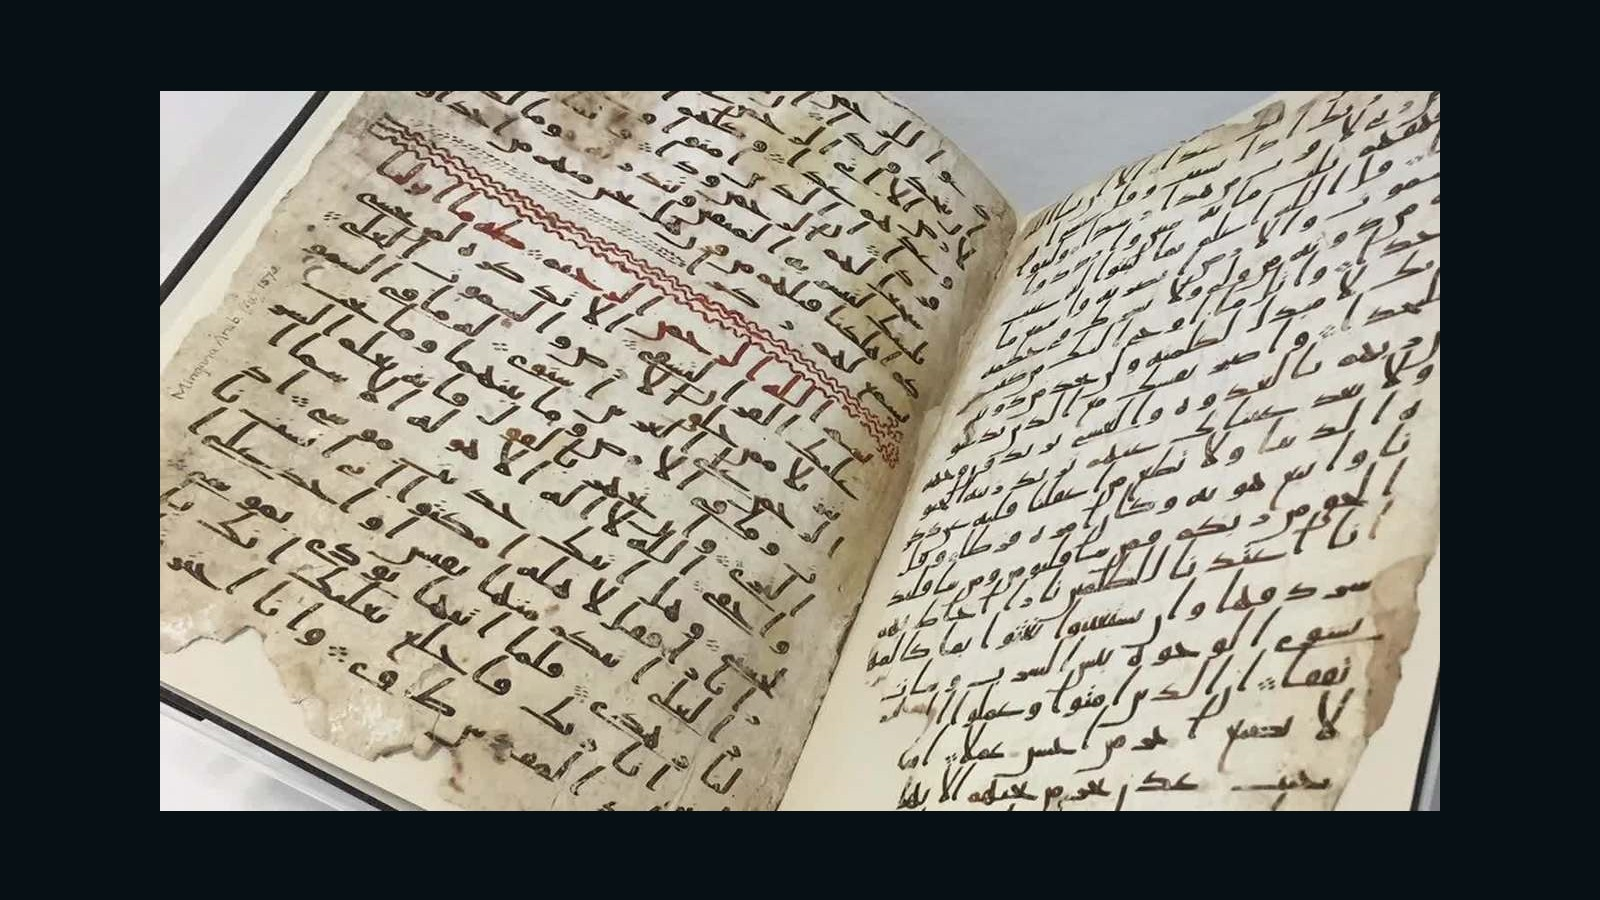 Could Quran pages reveal text's holy secrets? - CNN